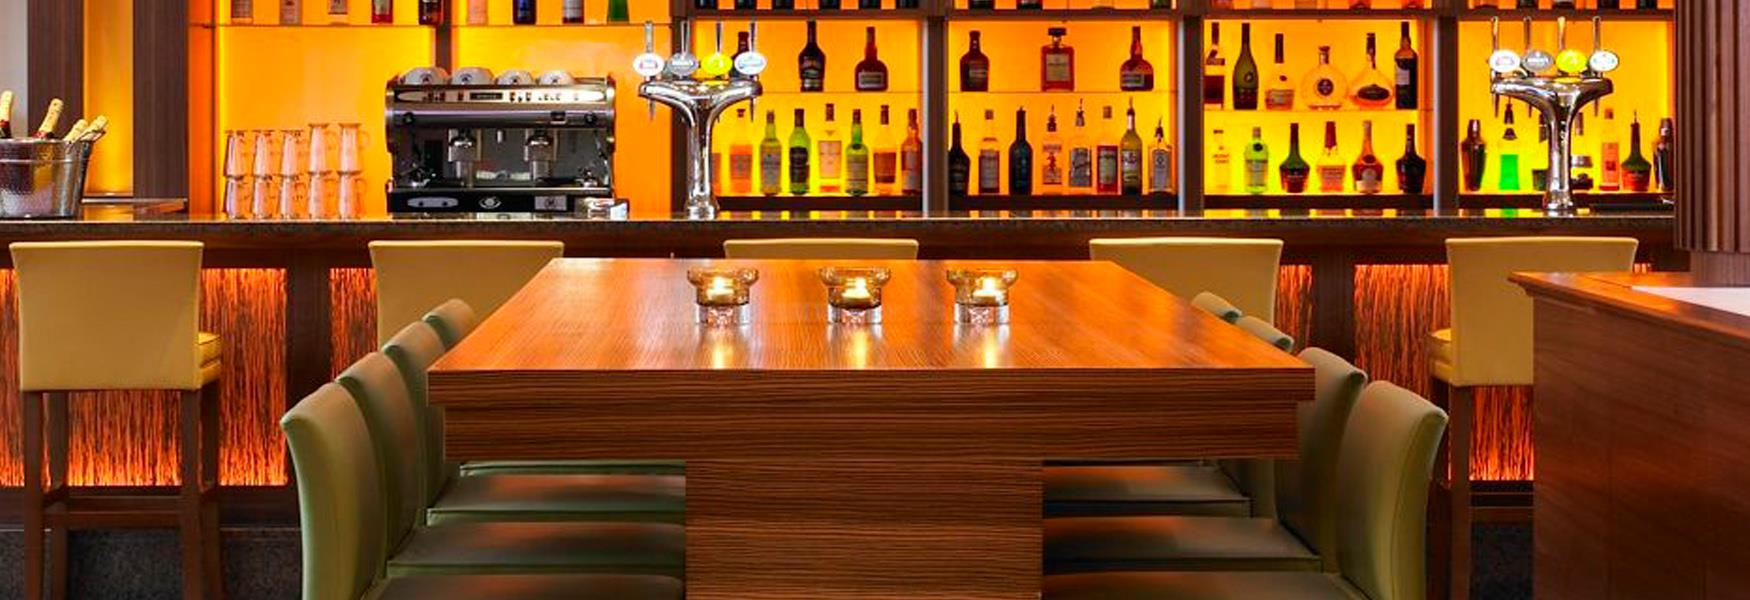 The Stag Maidstone >> Pubs And Bars Visit Maidstone